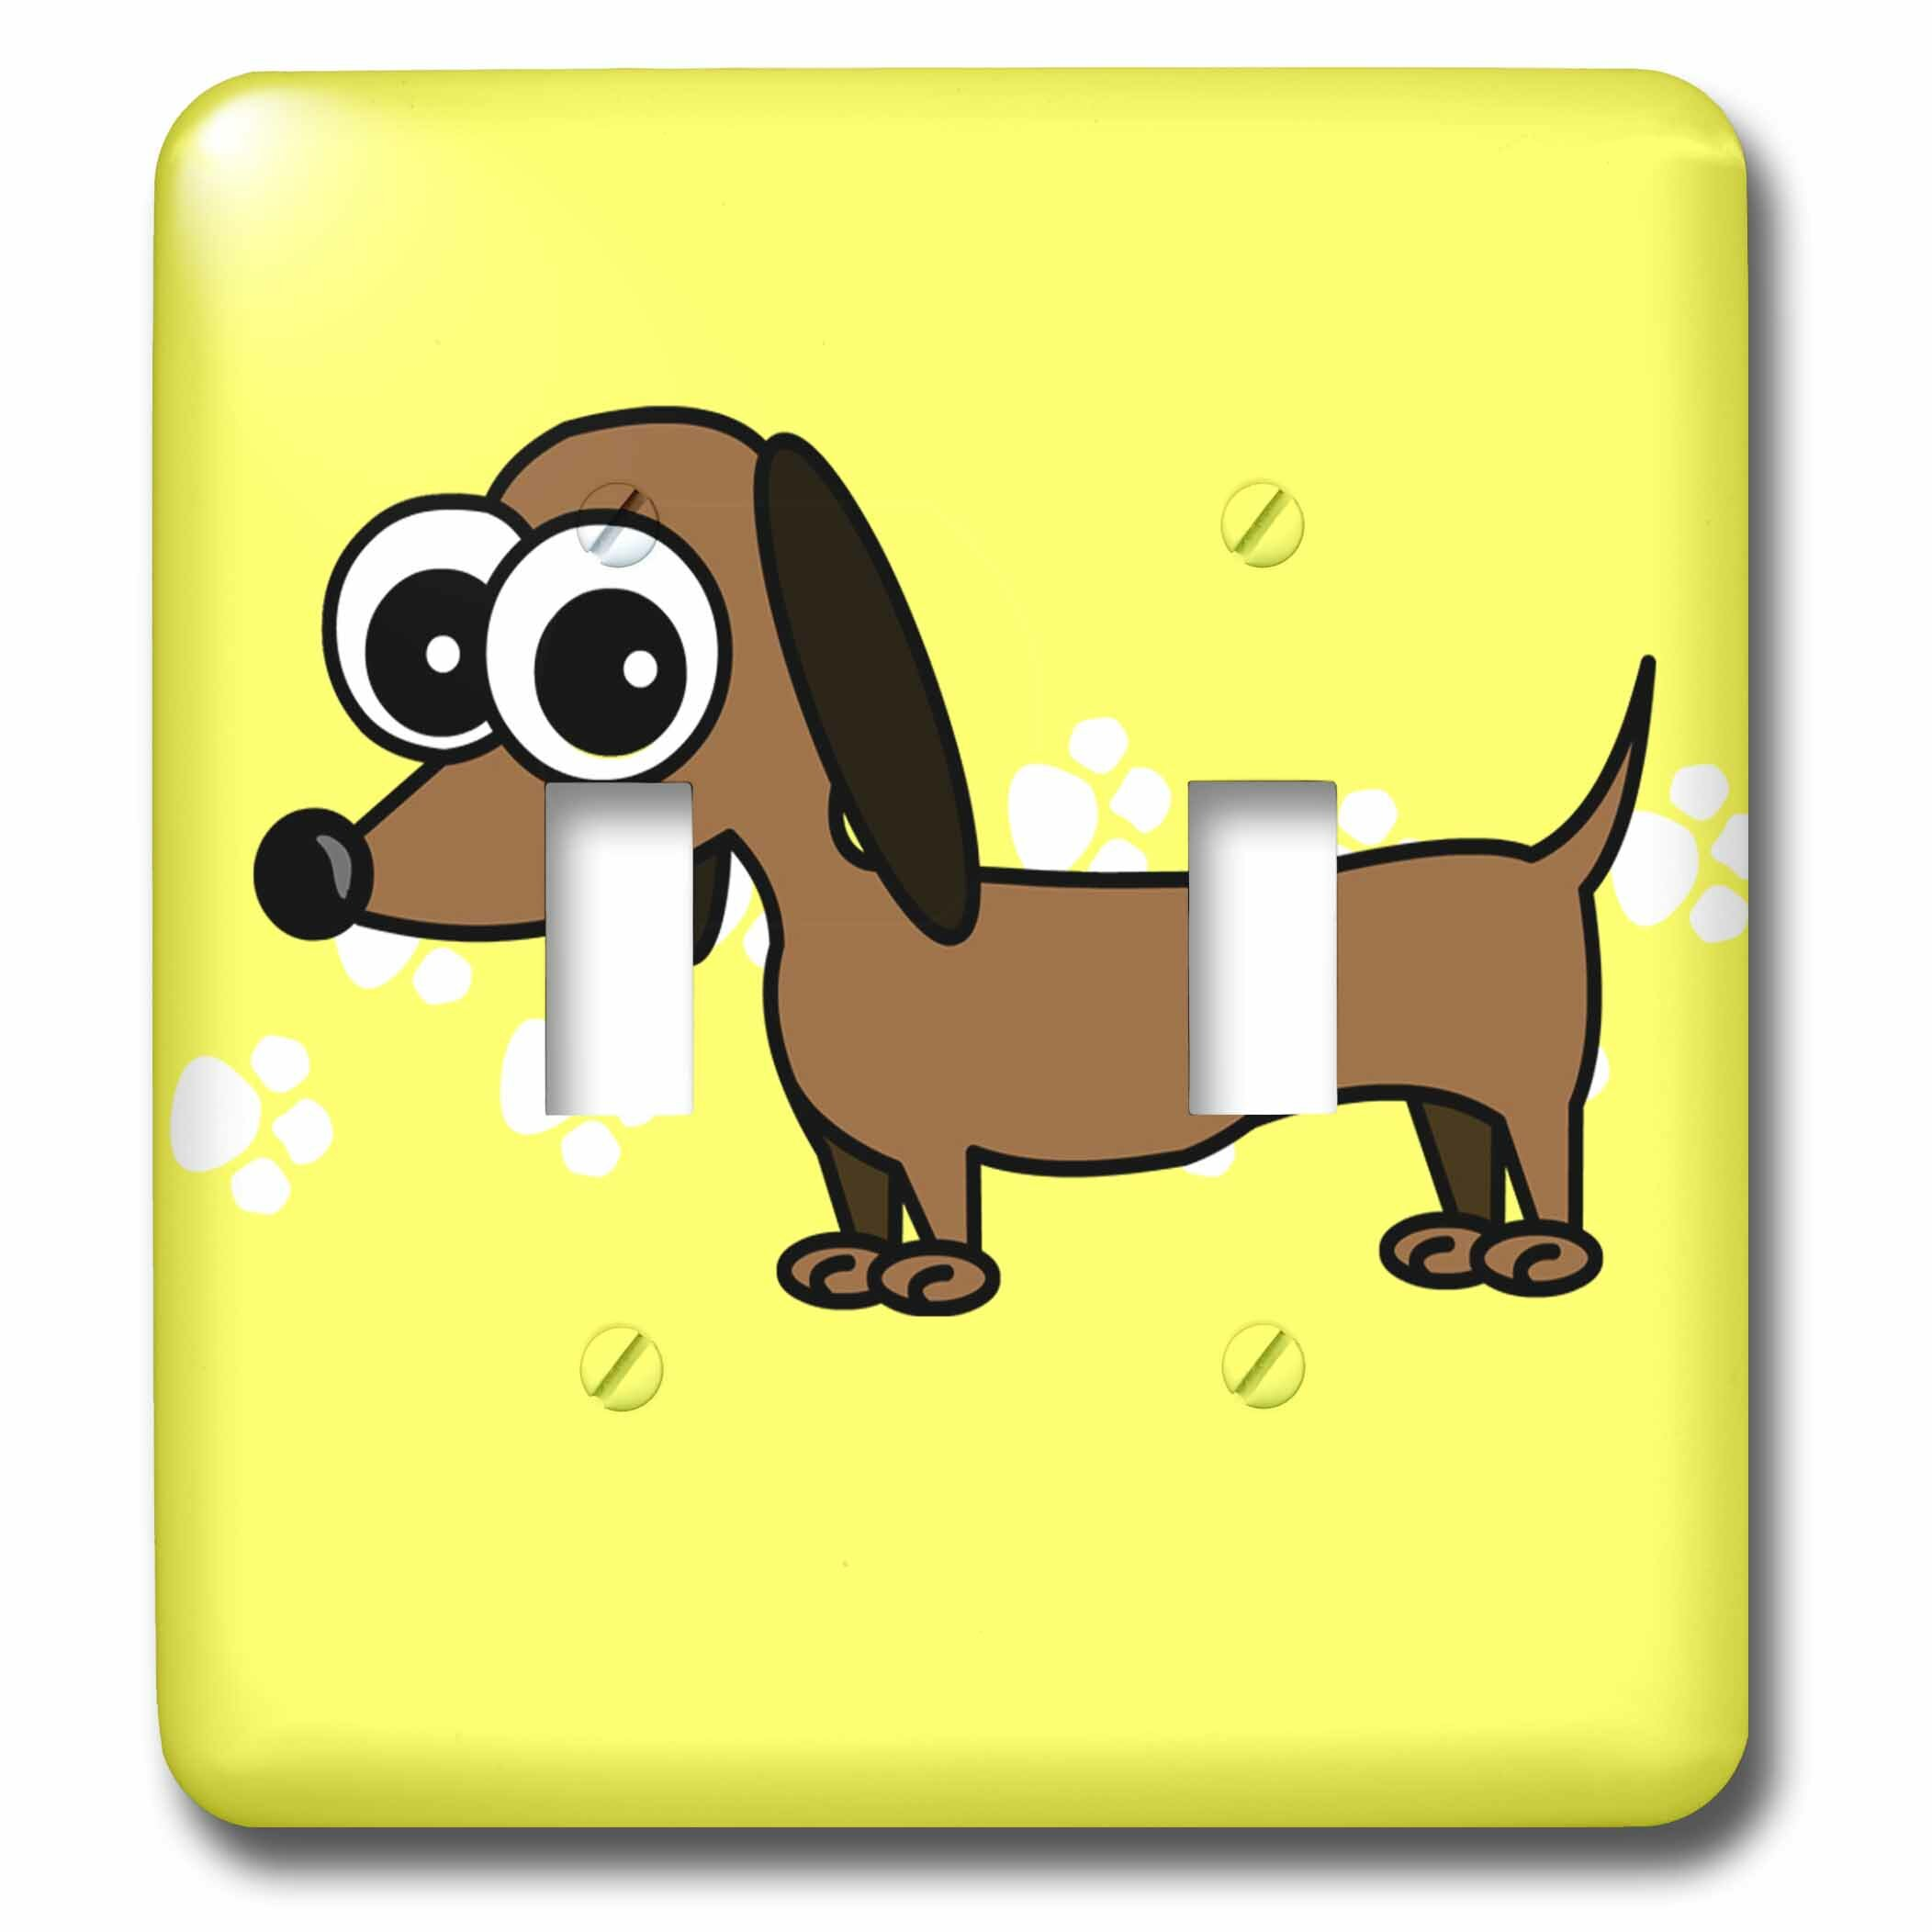 3drose Dachshund With Paw Prints 2 Gang Toggle Light Switch Wall Plate Wayfair